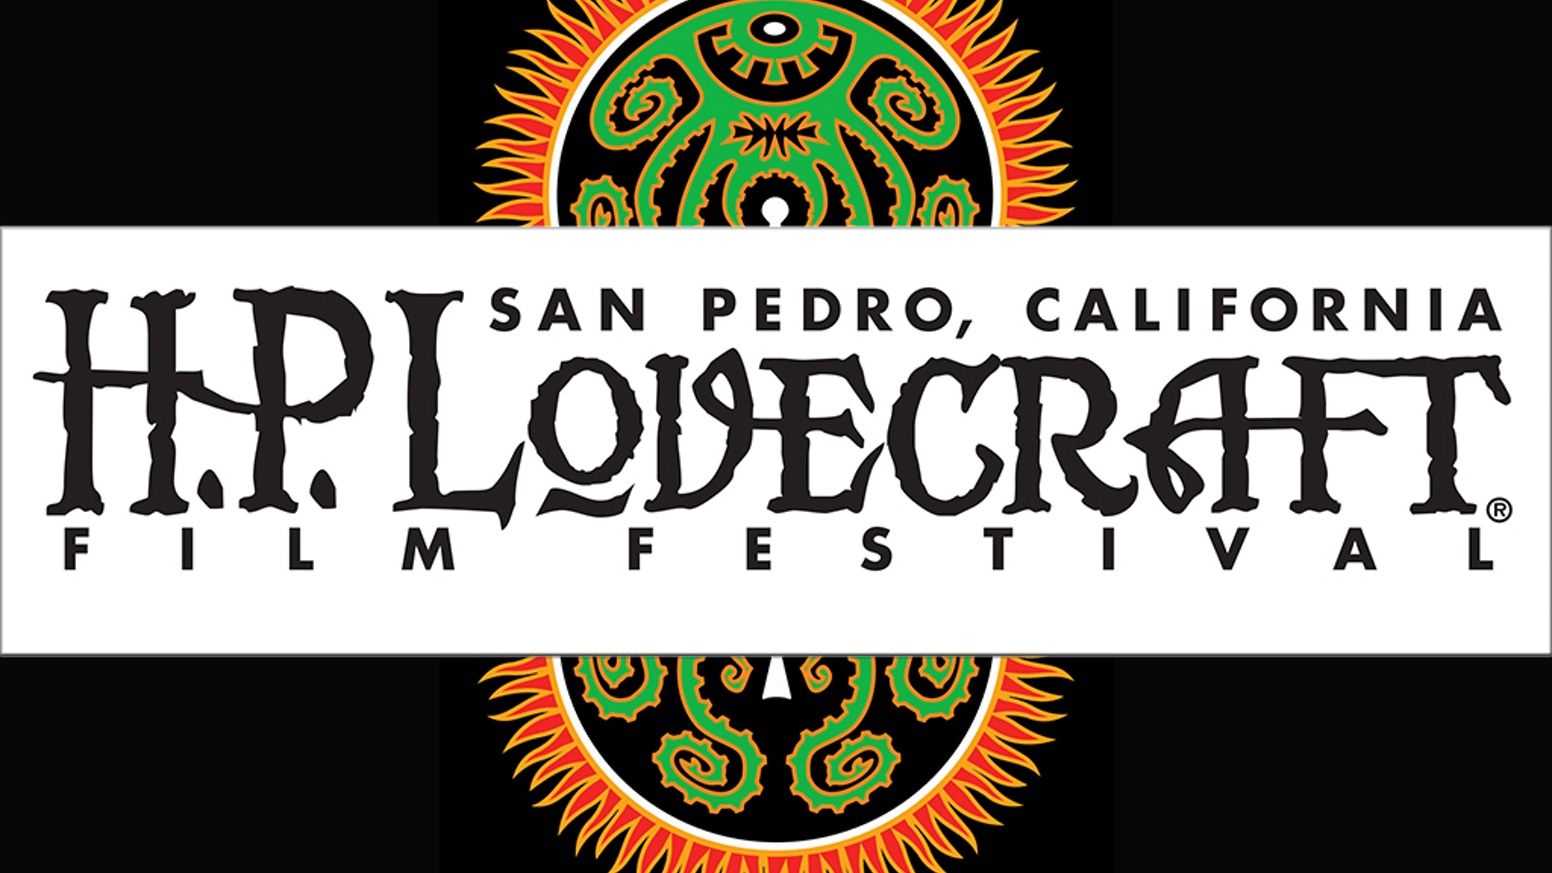 91b9e121a 2015 marks the 125th anniversary of the birth of Howard Phillips (H.P.)  Lovecraft, and The H.P. Lovecraft Film Festival & CthulhuCon®-San Pedro  returns for ...